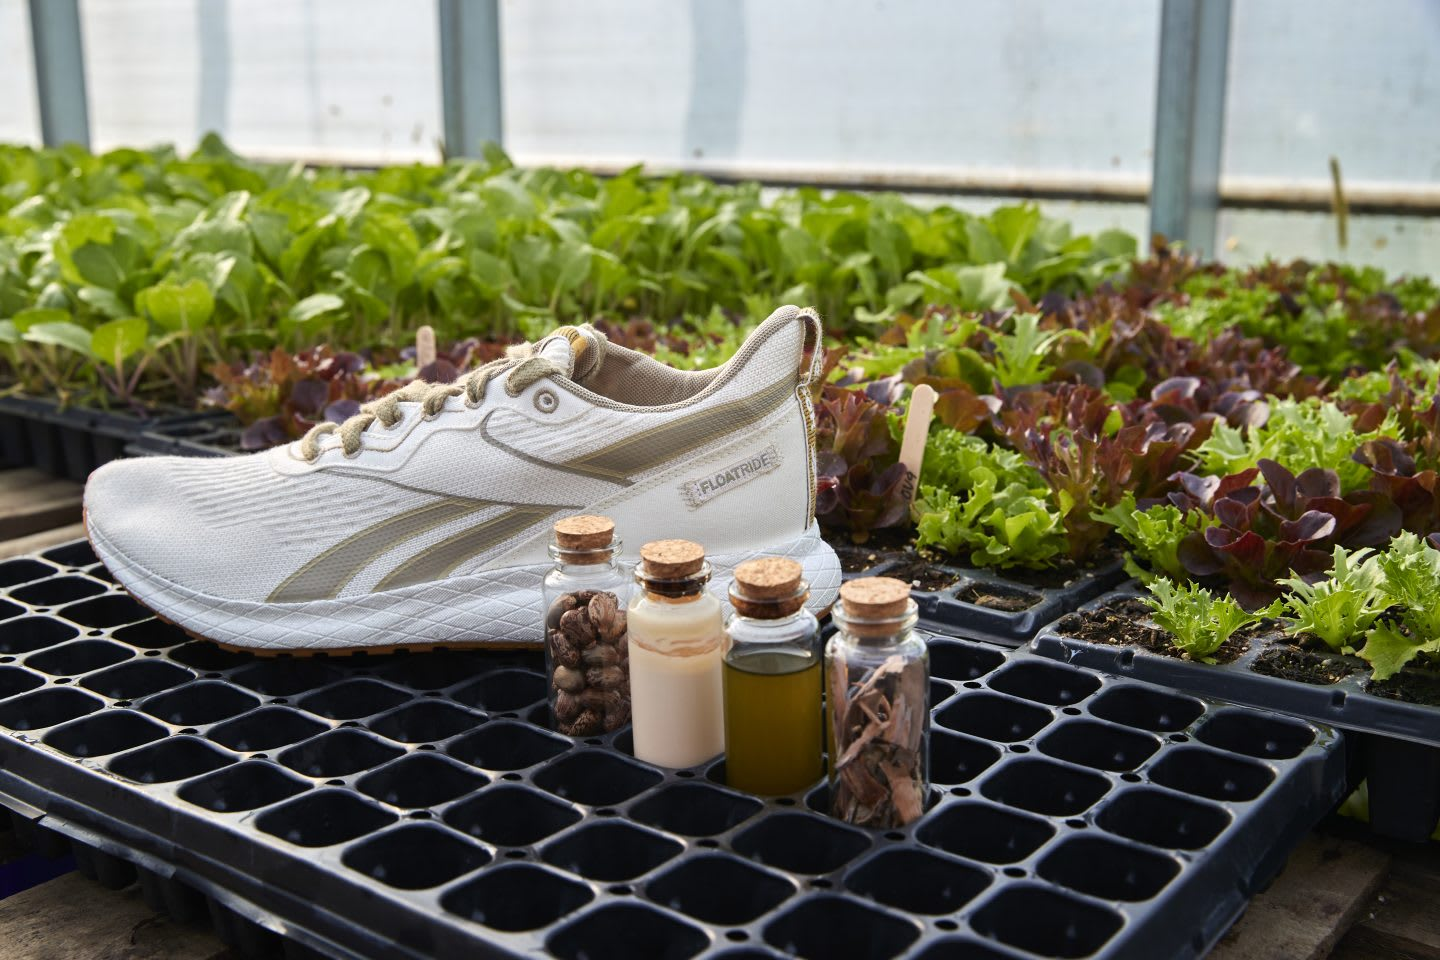 Reebok Floatride Forever GROW with materials in a farm, sustainability, plant-based, Reebok